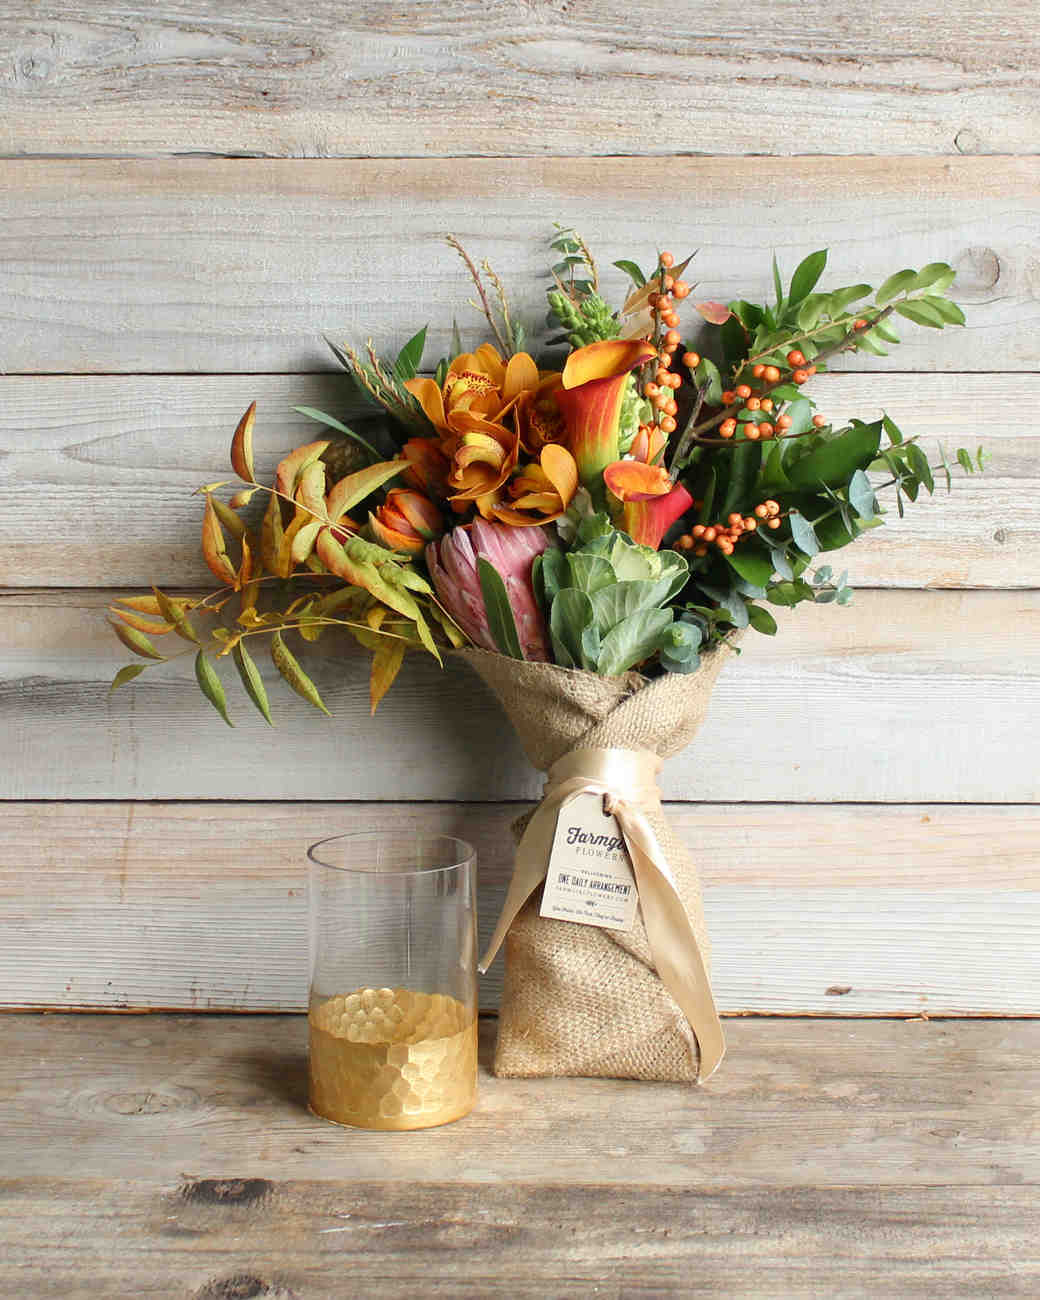 30 Hostess Gifts for Your Mother in Law